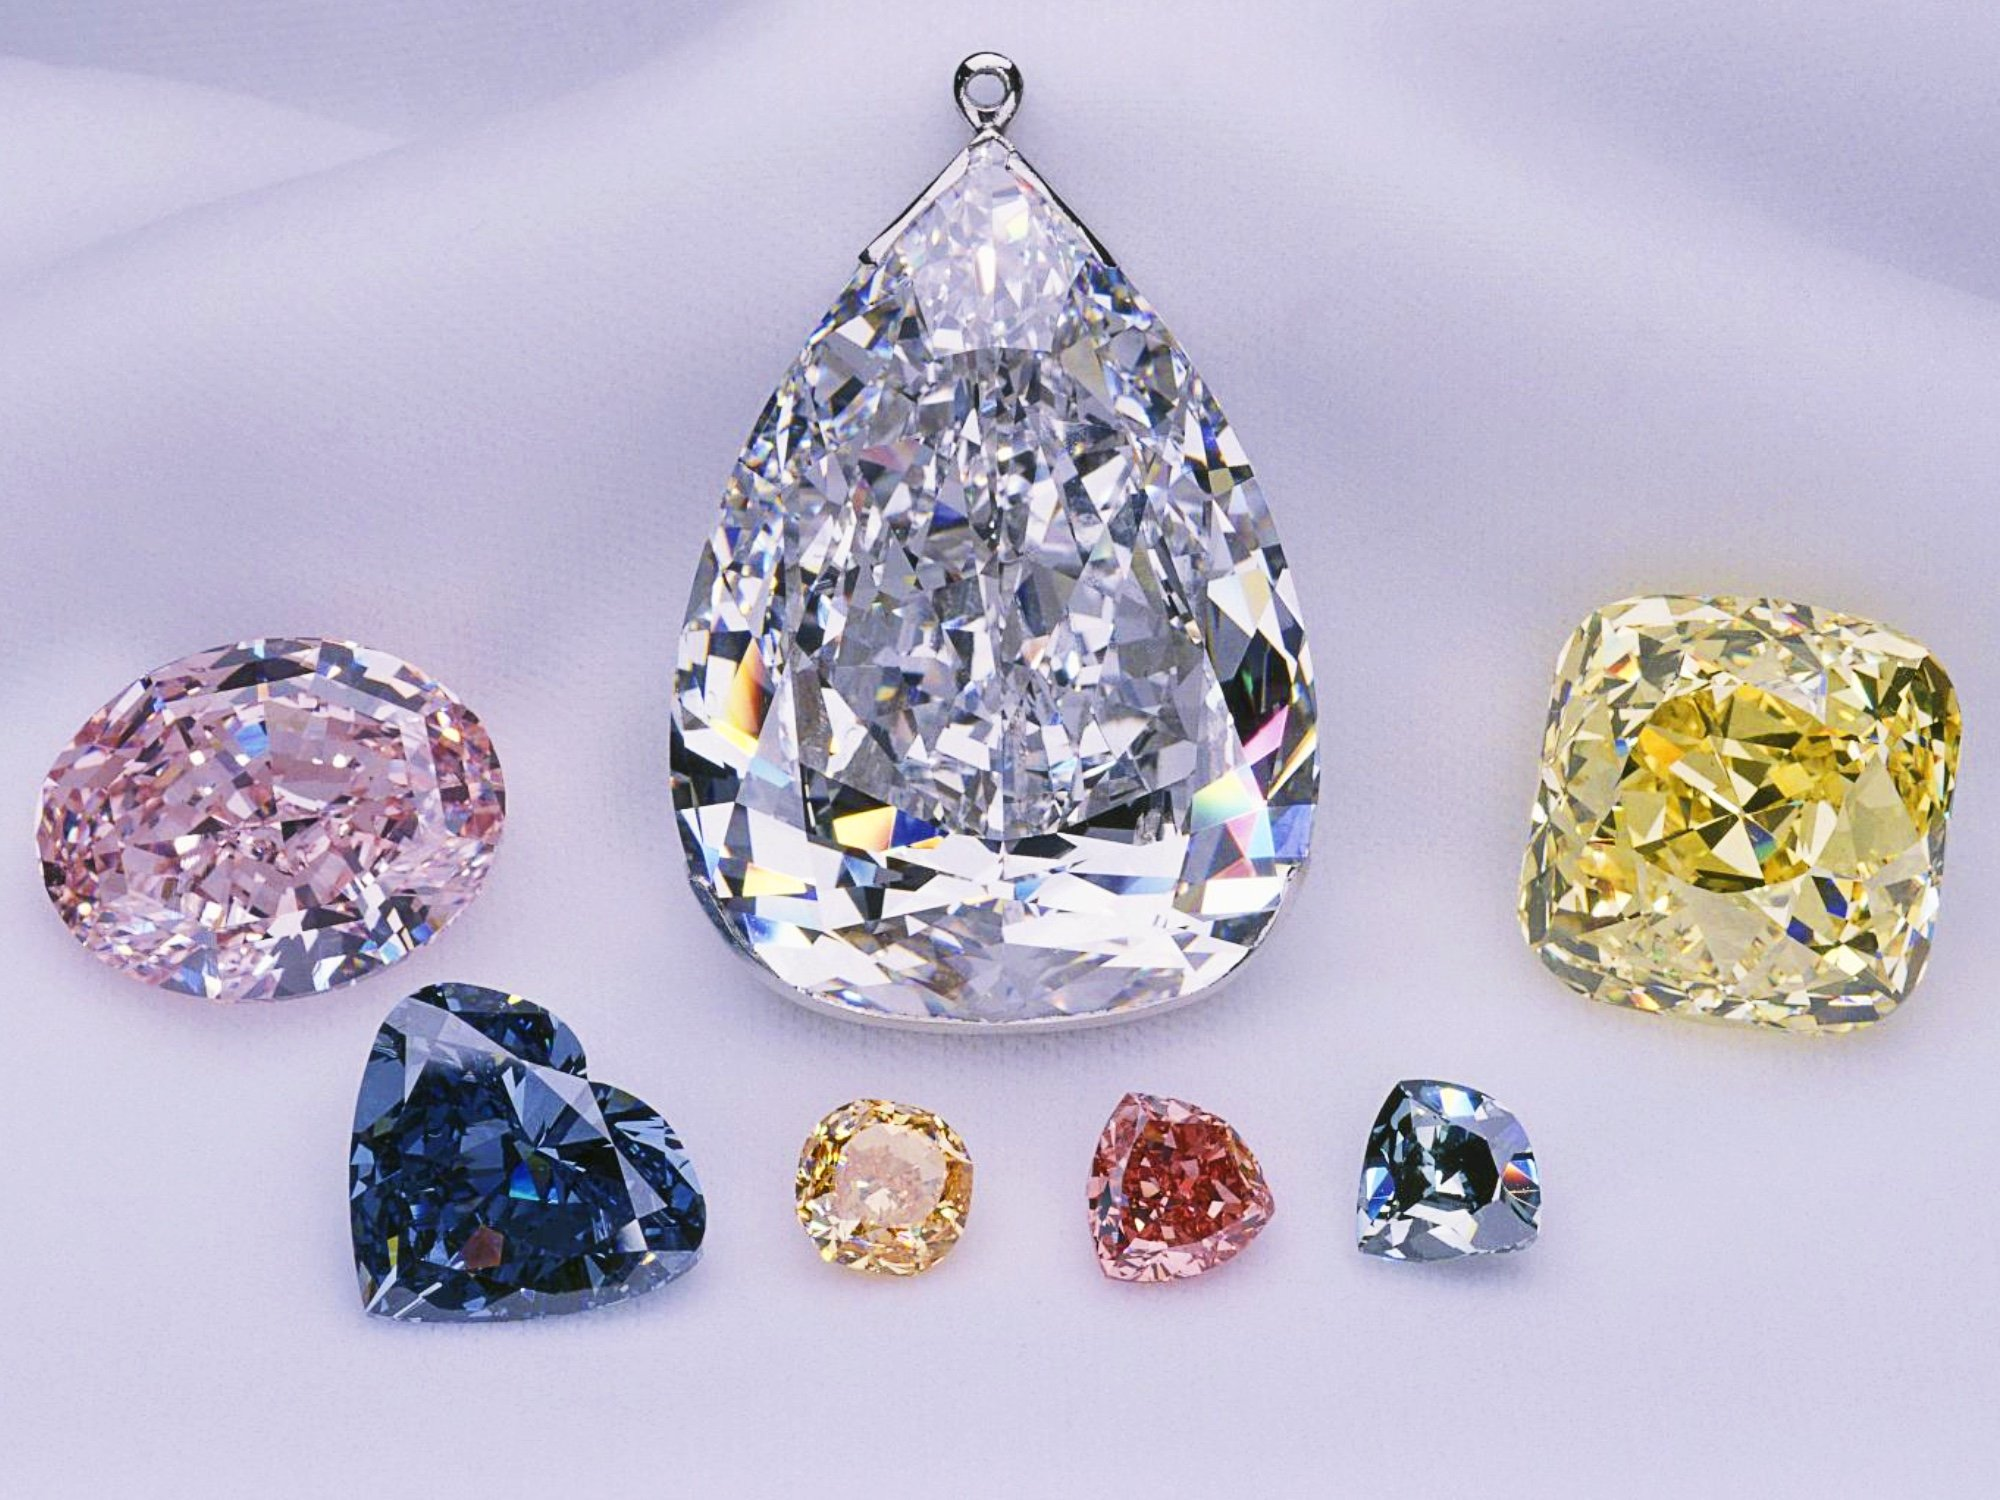 Splendour of Diamonds Exhibition 2003 | Diamond Buzz